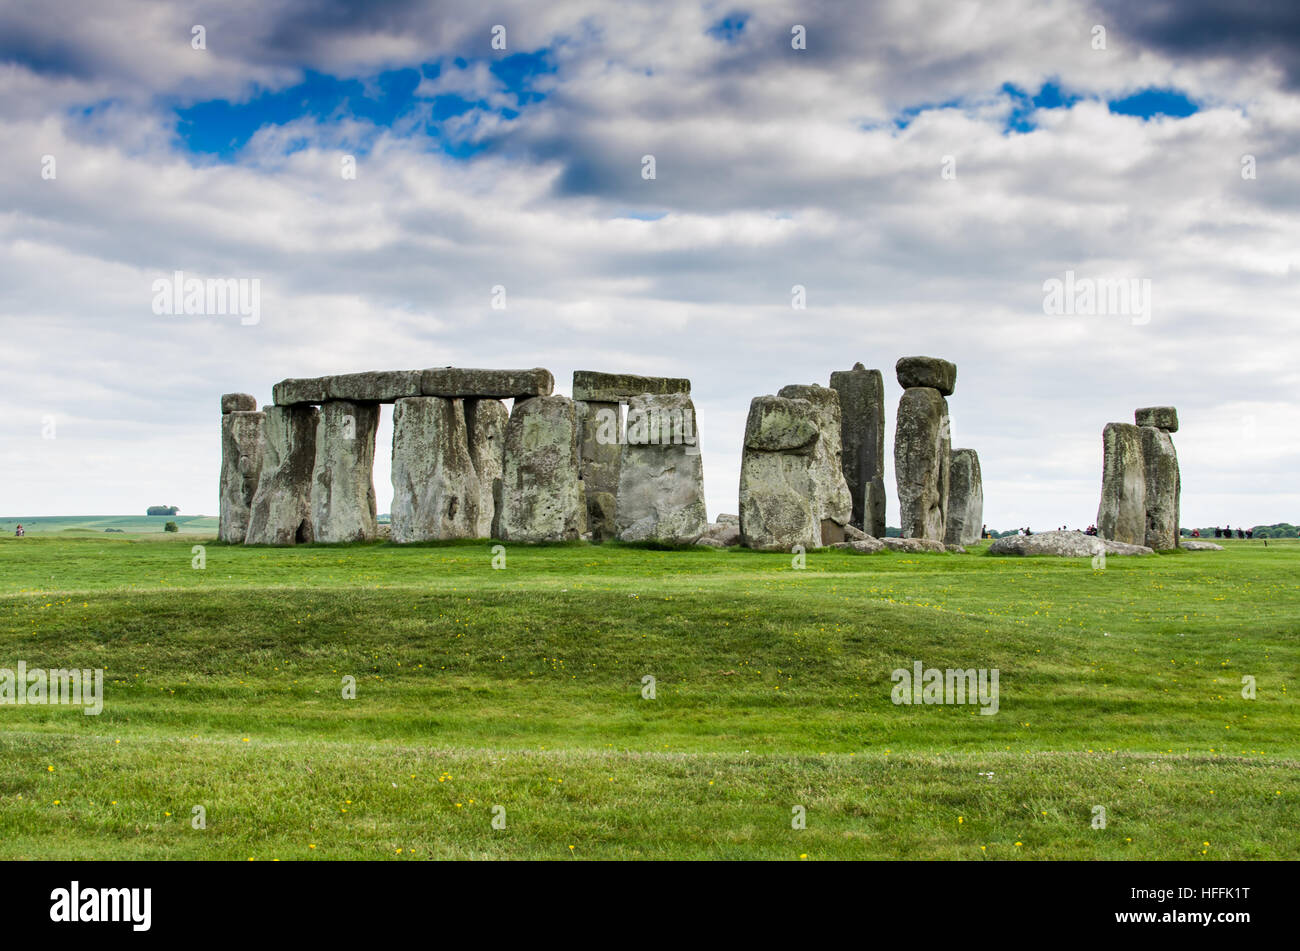 Clouds above Stonehenge in the Salisbury Plain - Stock Image